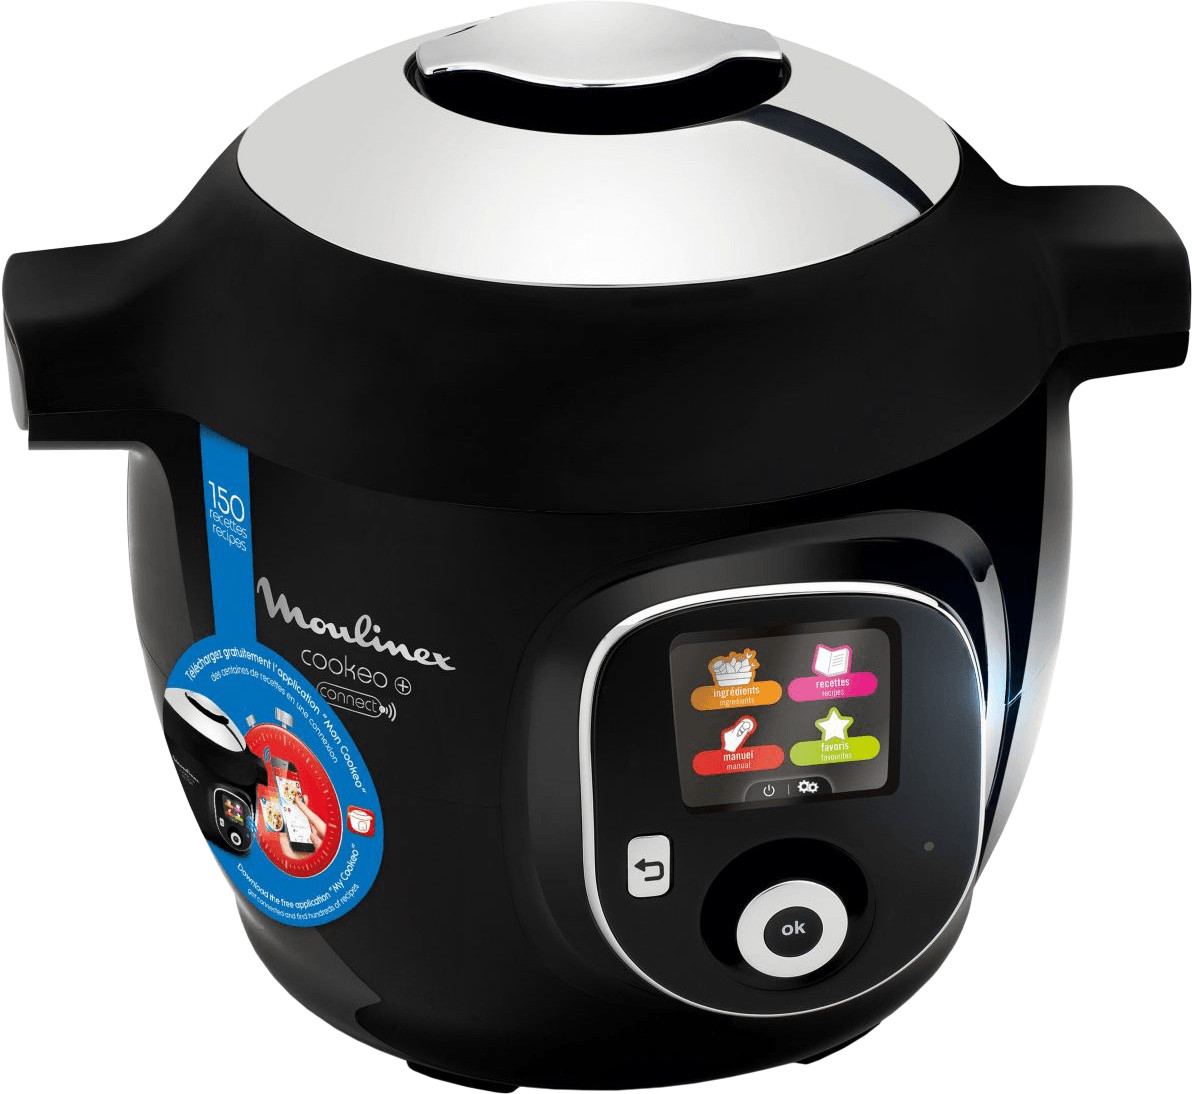 Image of Moulinex Cookeo + connect (YY2942FB) black